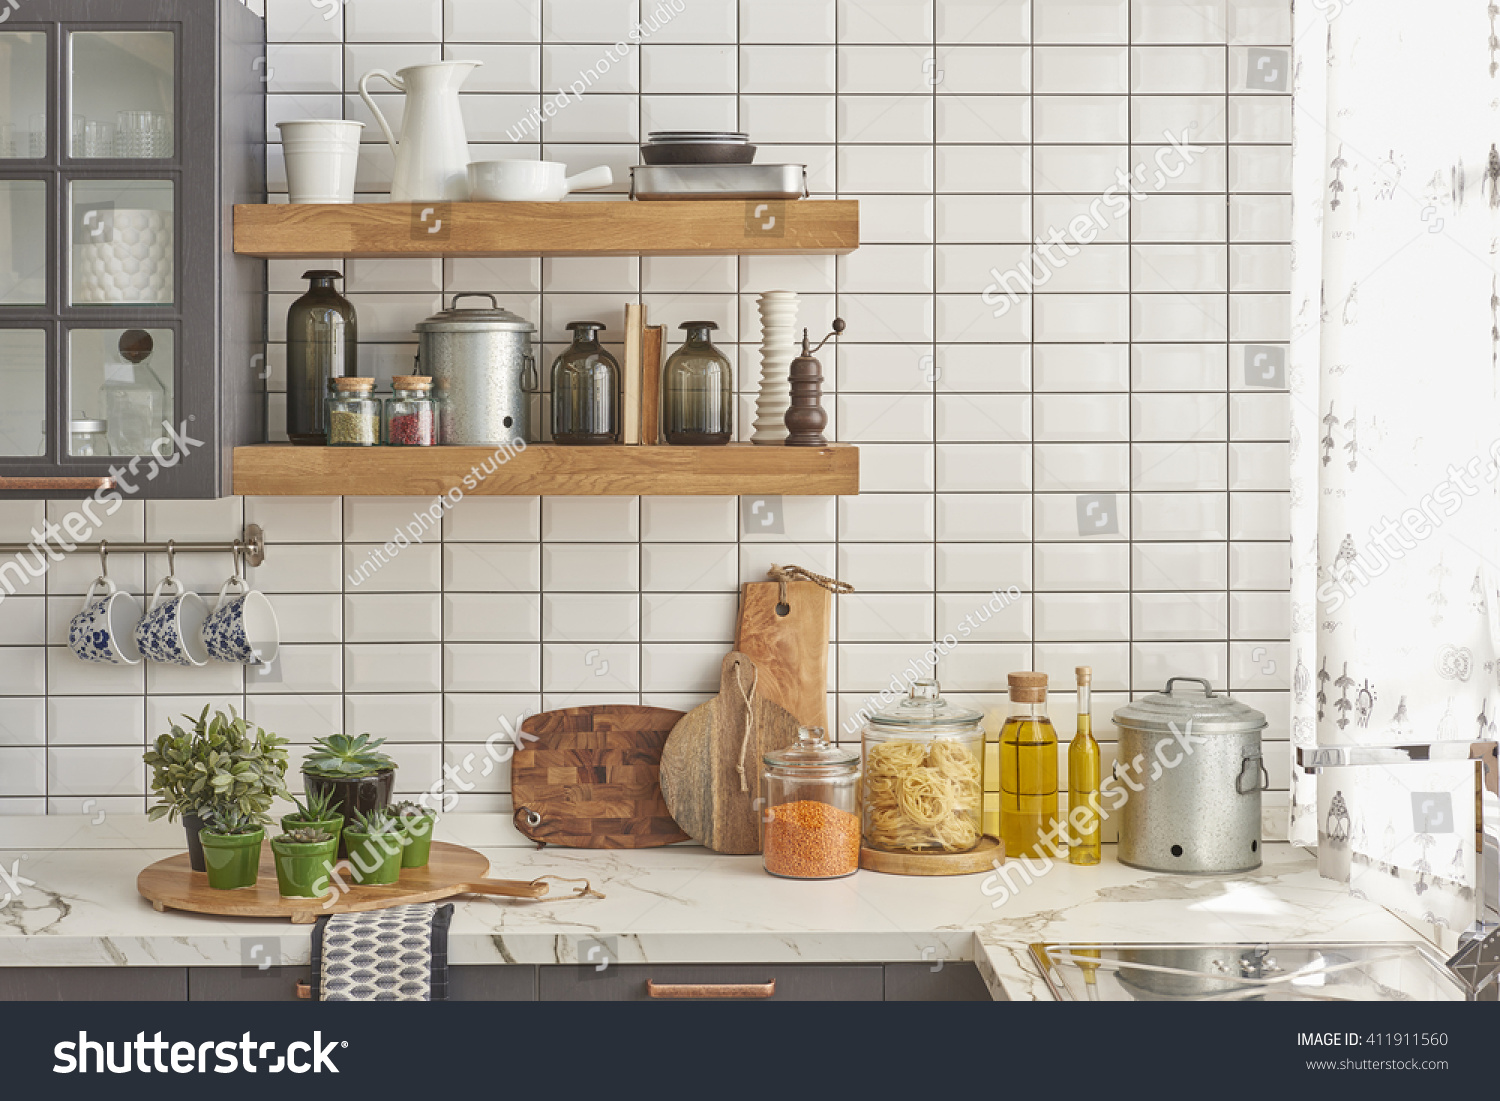 White Tiles Wall Modern Kitchen Chopping Stock Photo